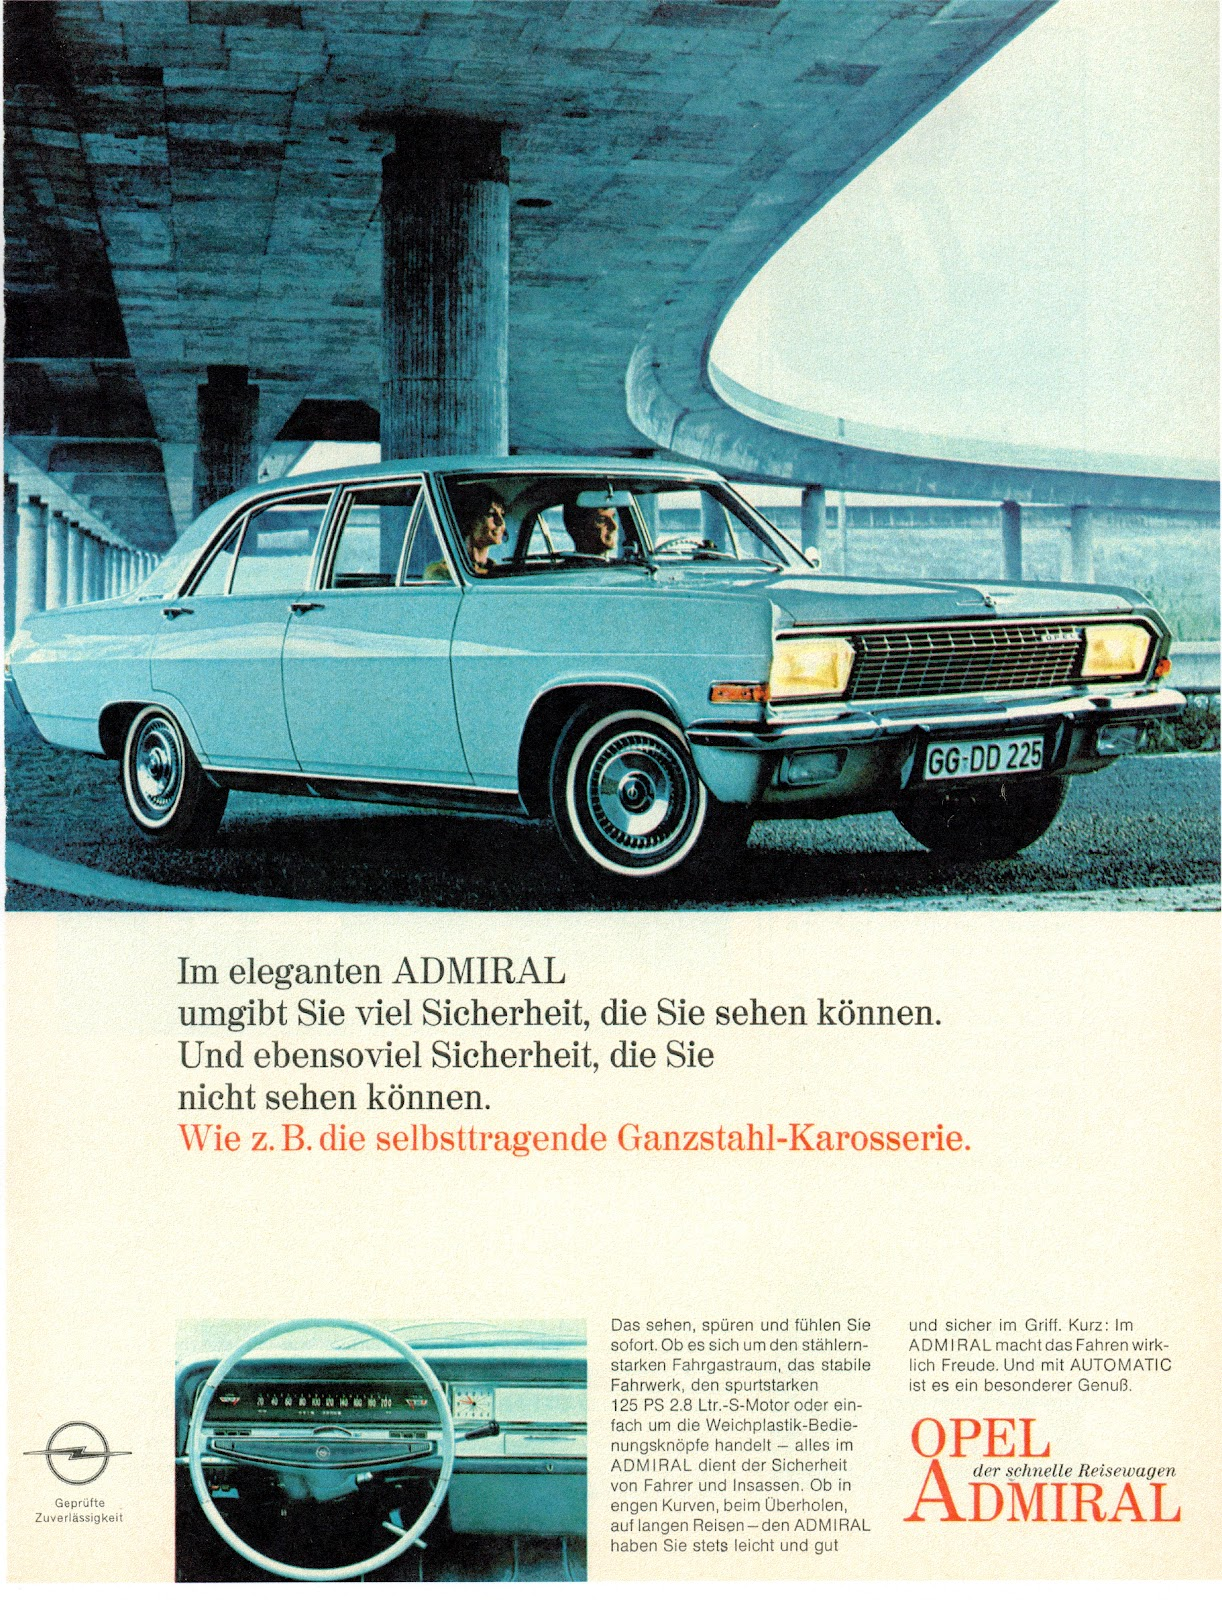 1967-Opel-Admiral-Germany.jpg